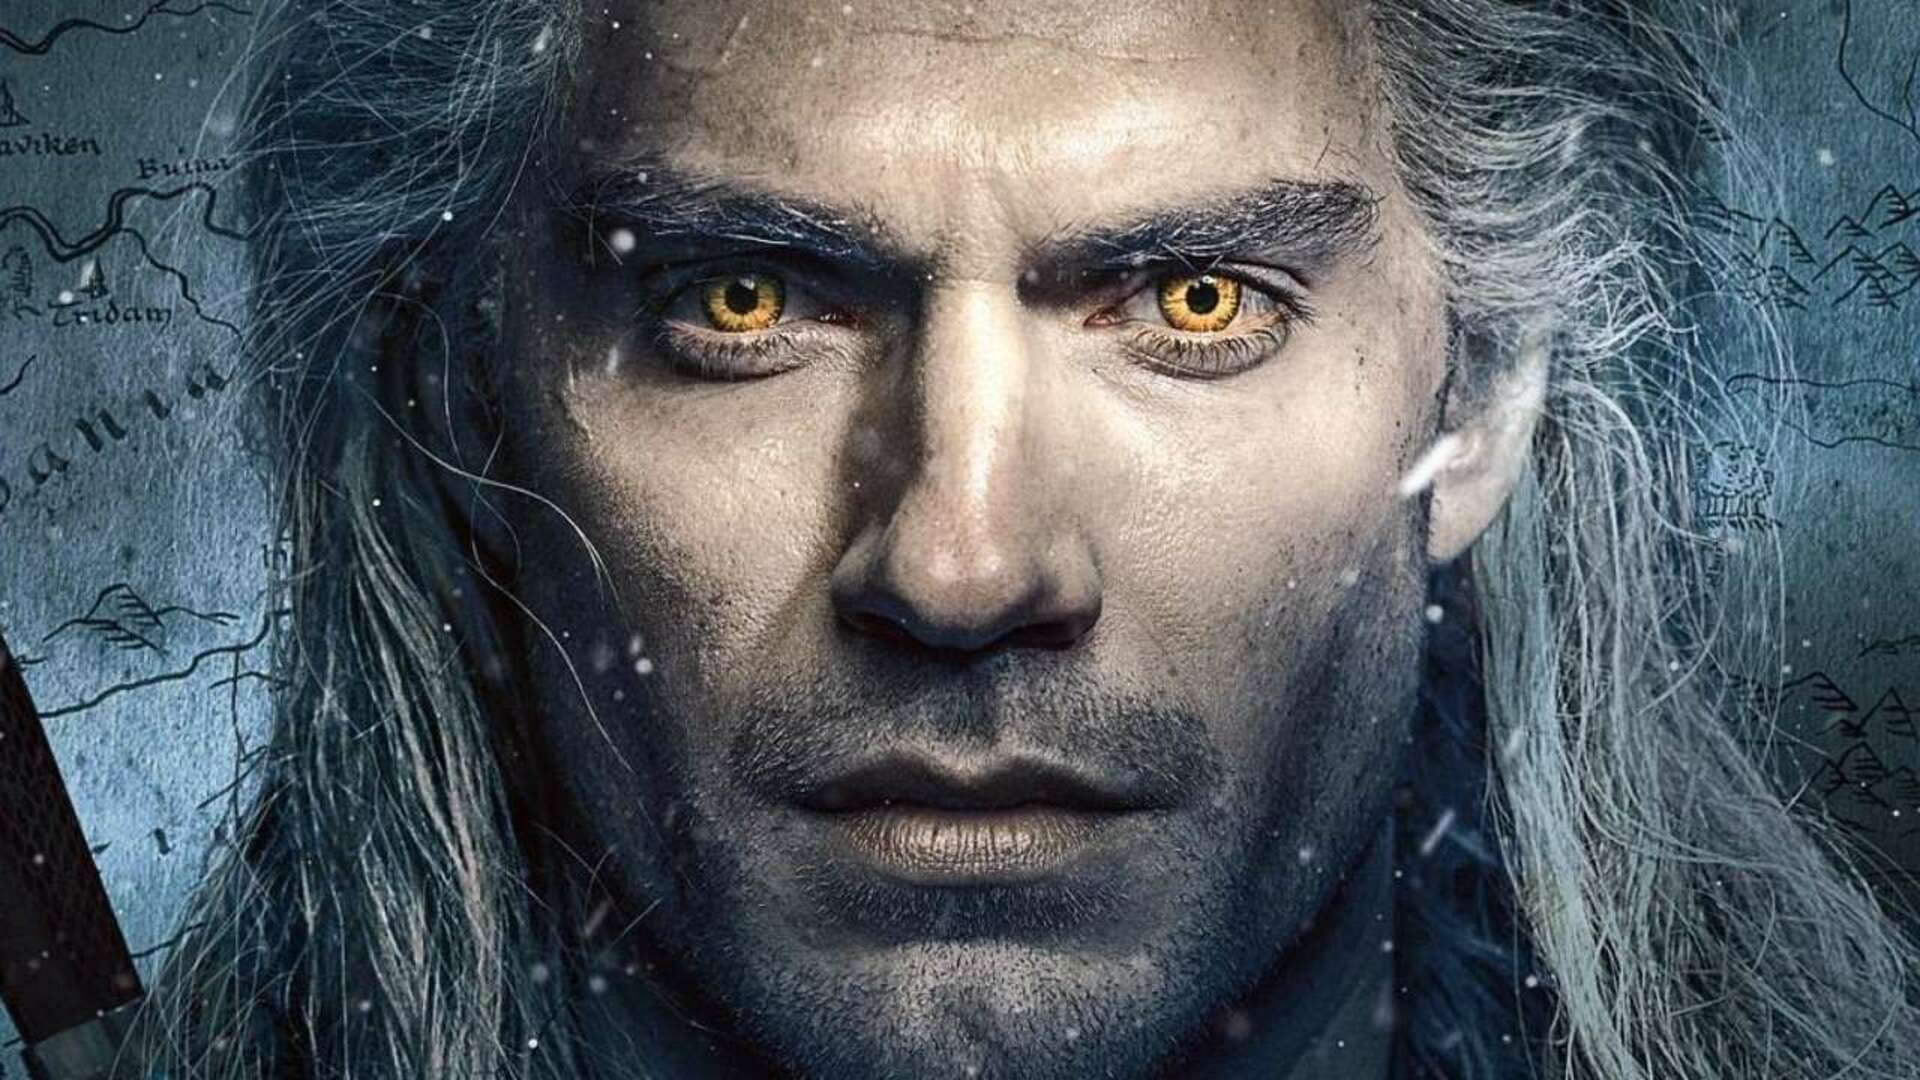 Netflix Announces New Castmembers for The Witcher as Season 2 Production Begins